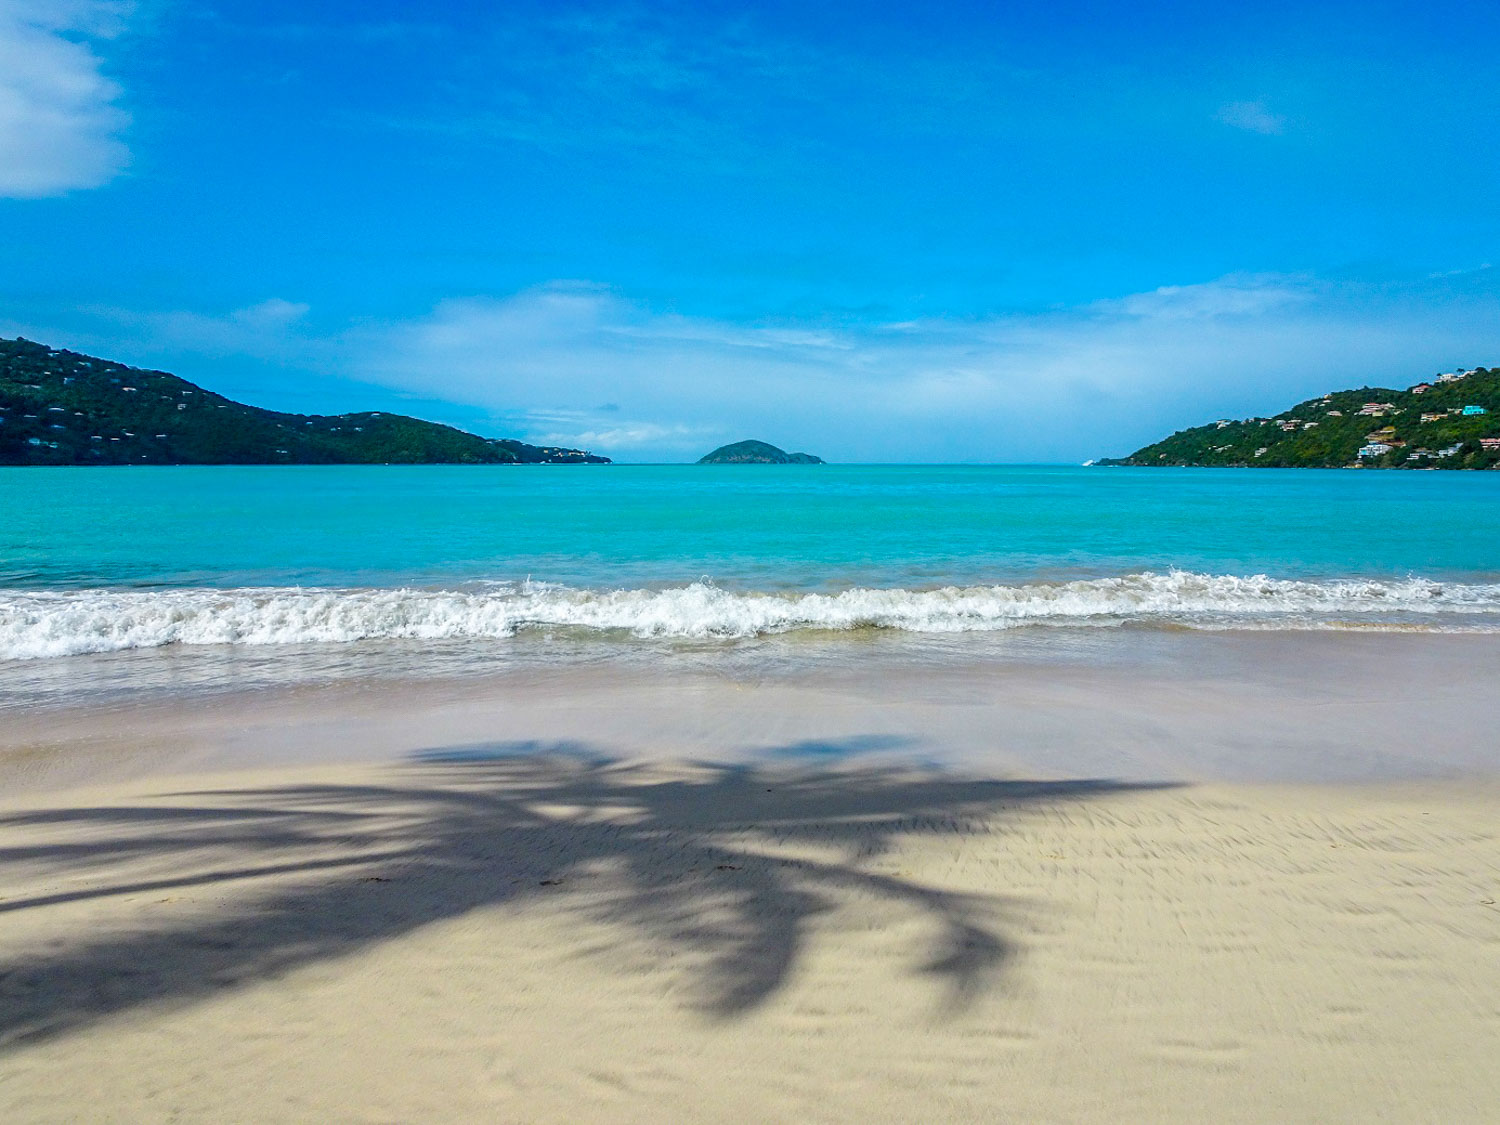 Magens Bay Beach in the US Virgin Islands in the Caribbean